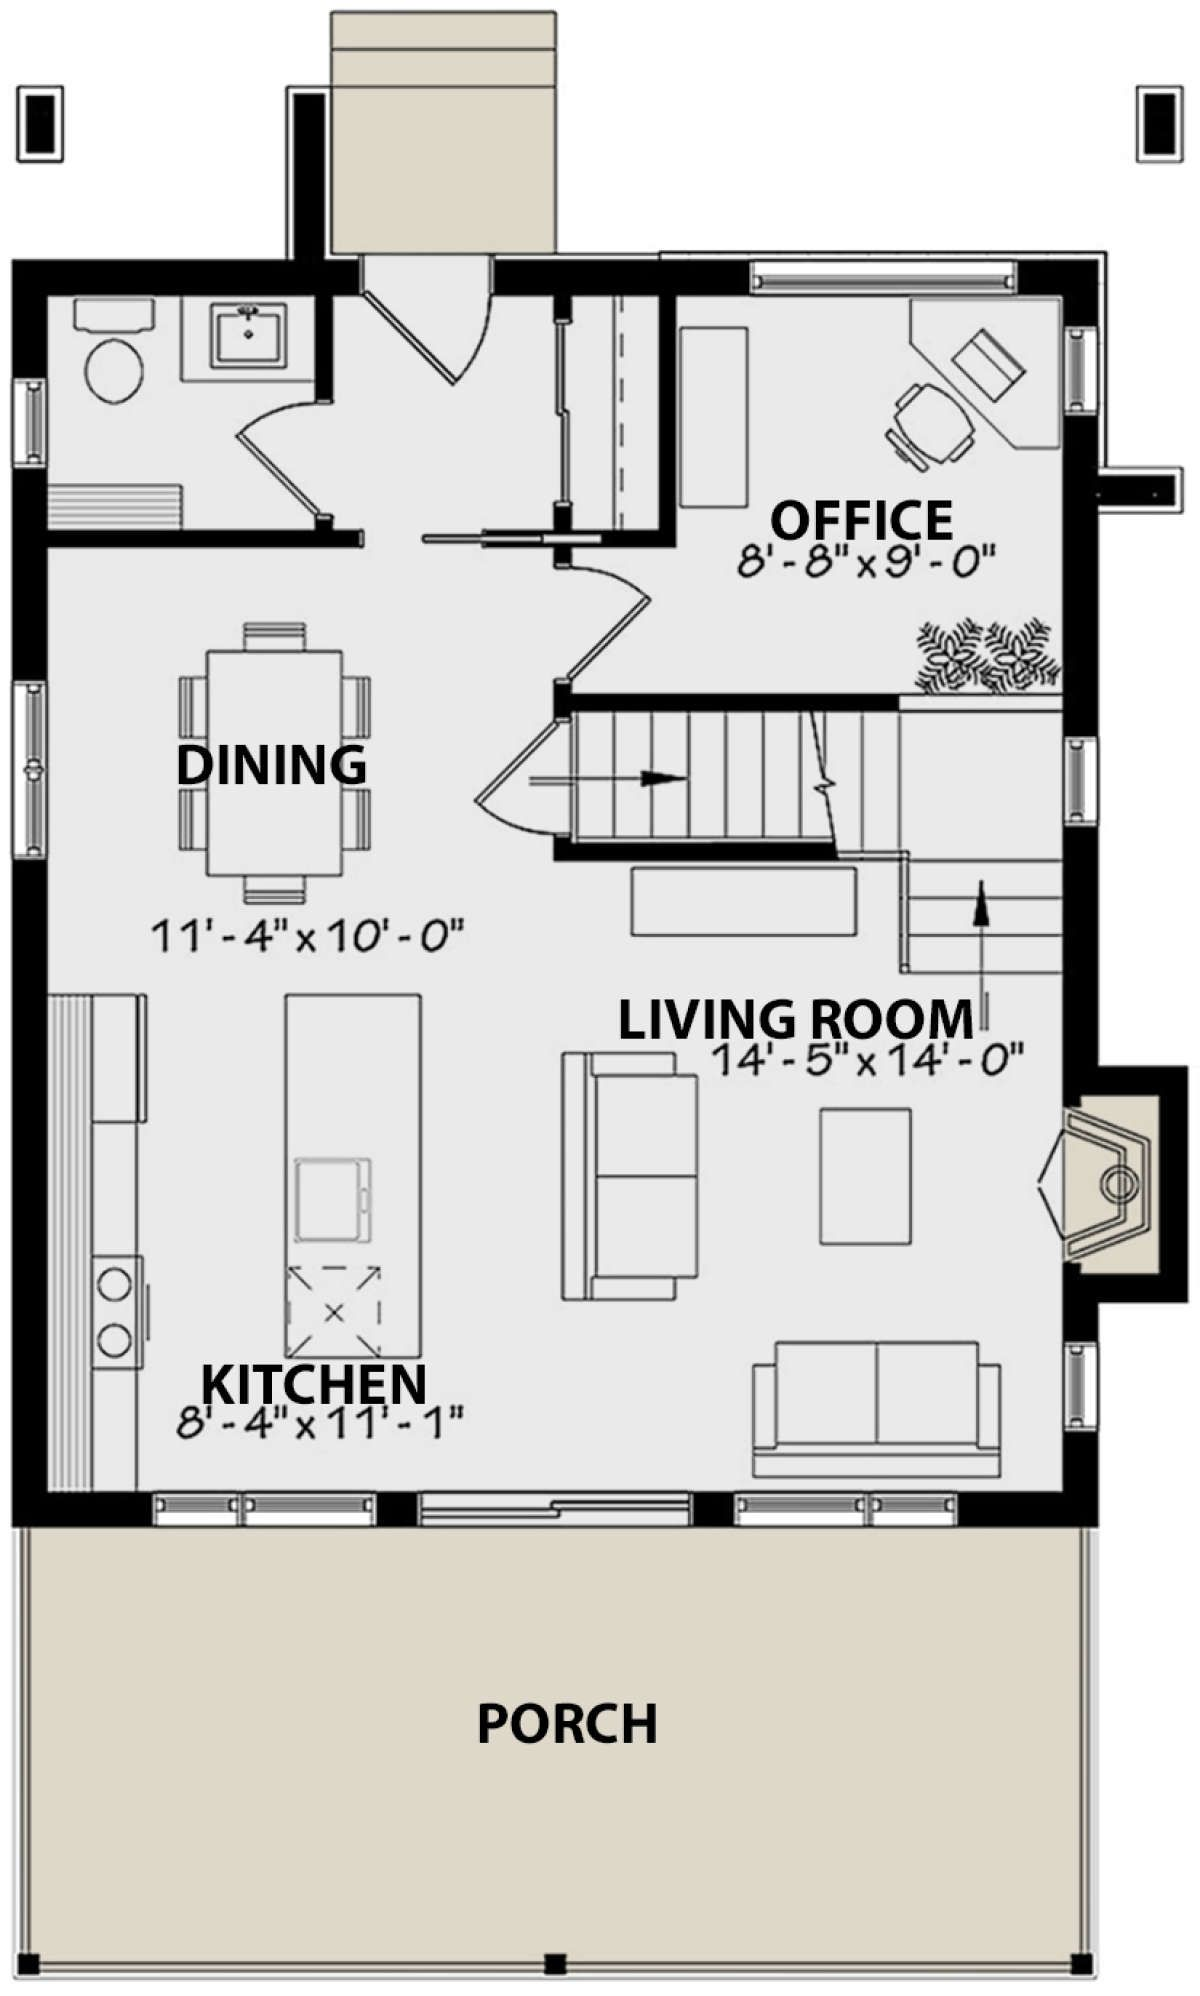 House Plan 034 01151 Contemporary Plan 1 344 Square Feet 2 Bedrooms 1 5 Bathrooms In 2021 Narrow Lot House Plans House Plans How To Plan